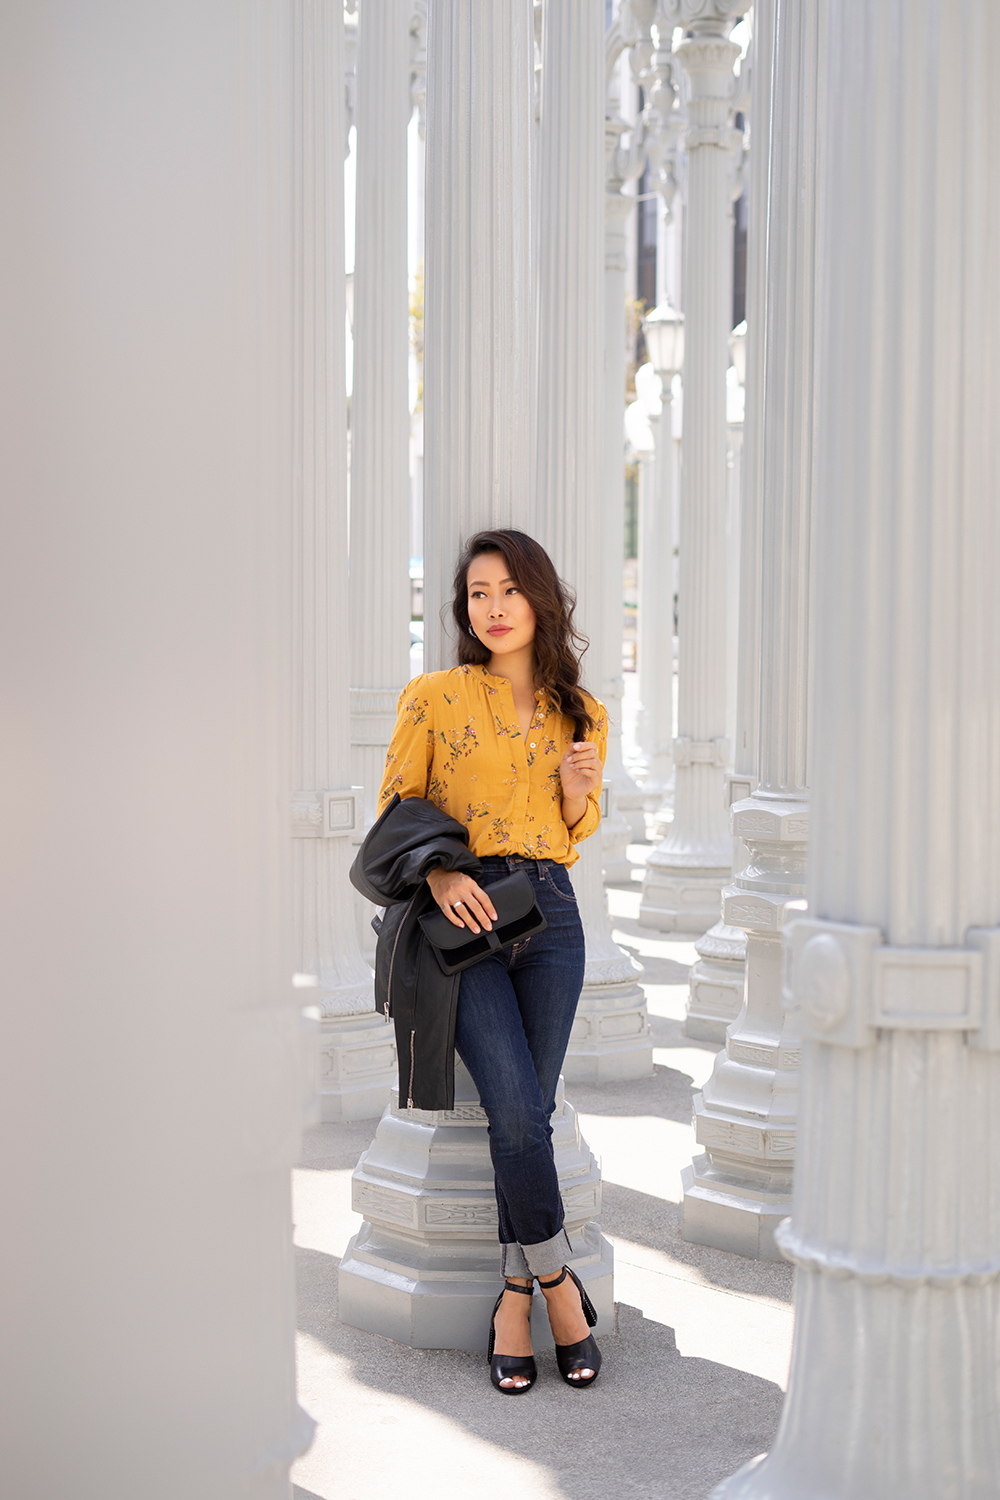 04-luckybrand-denim-jeans-leatherjacket-lacma-urbanlights